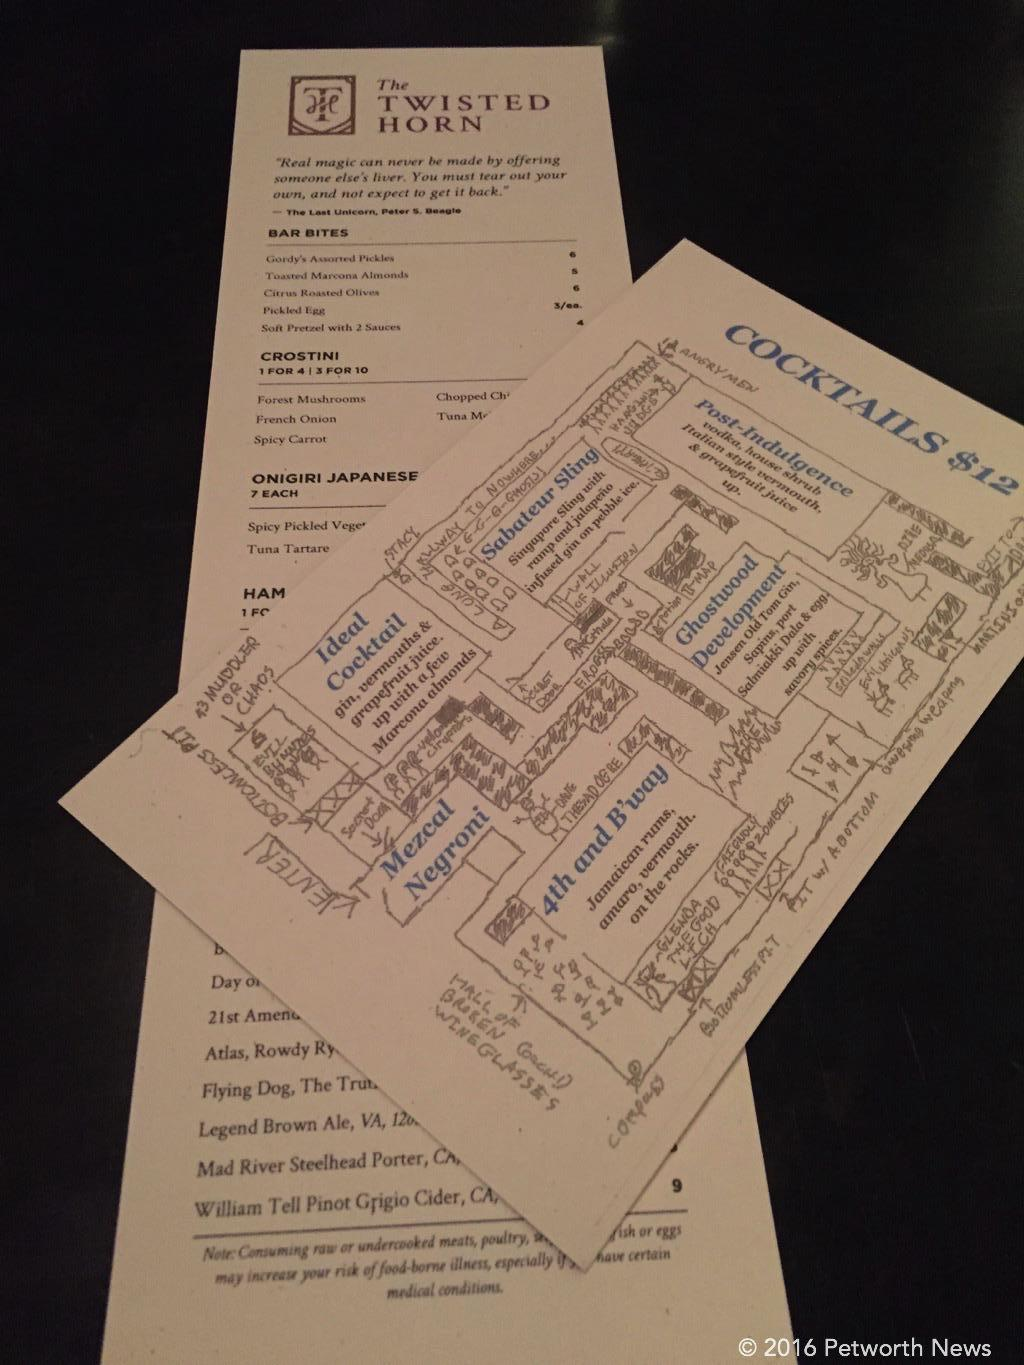 The cocktail and food menus.